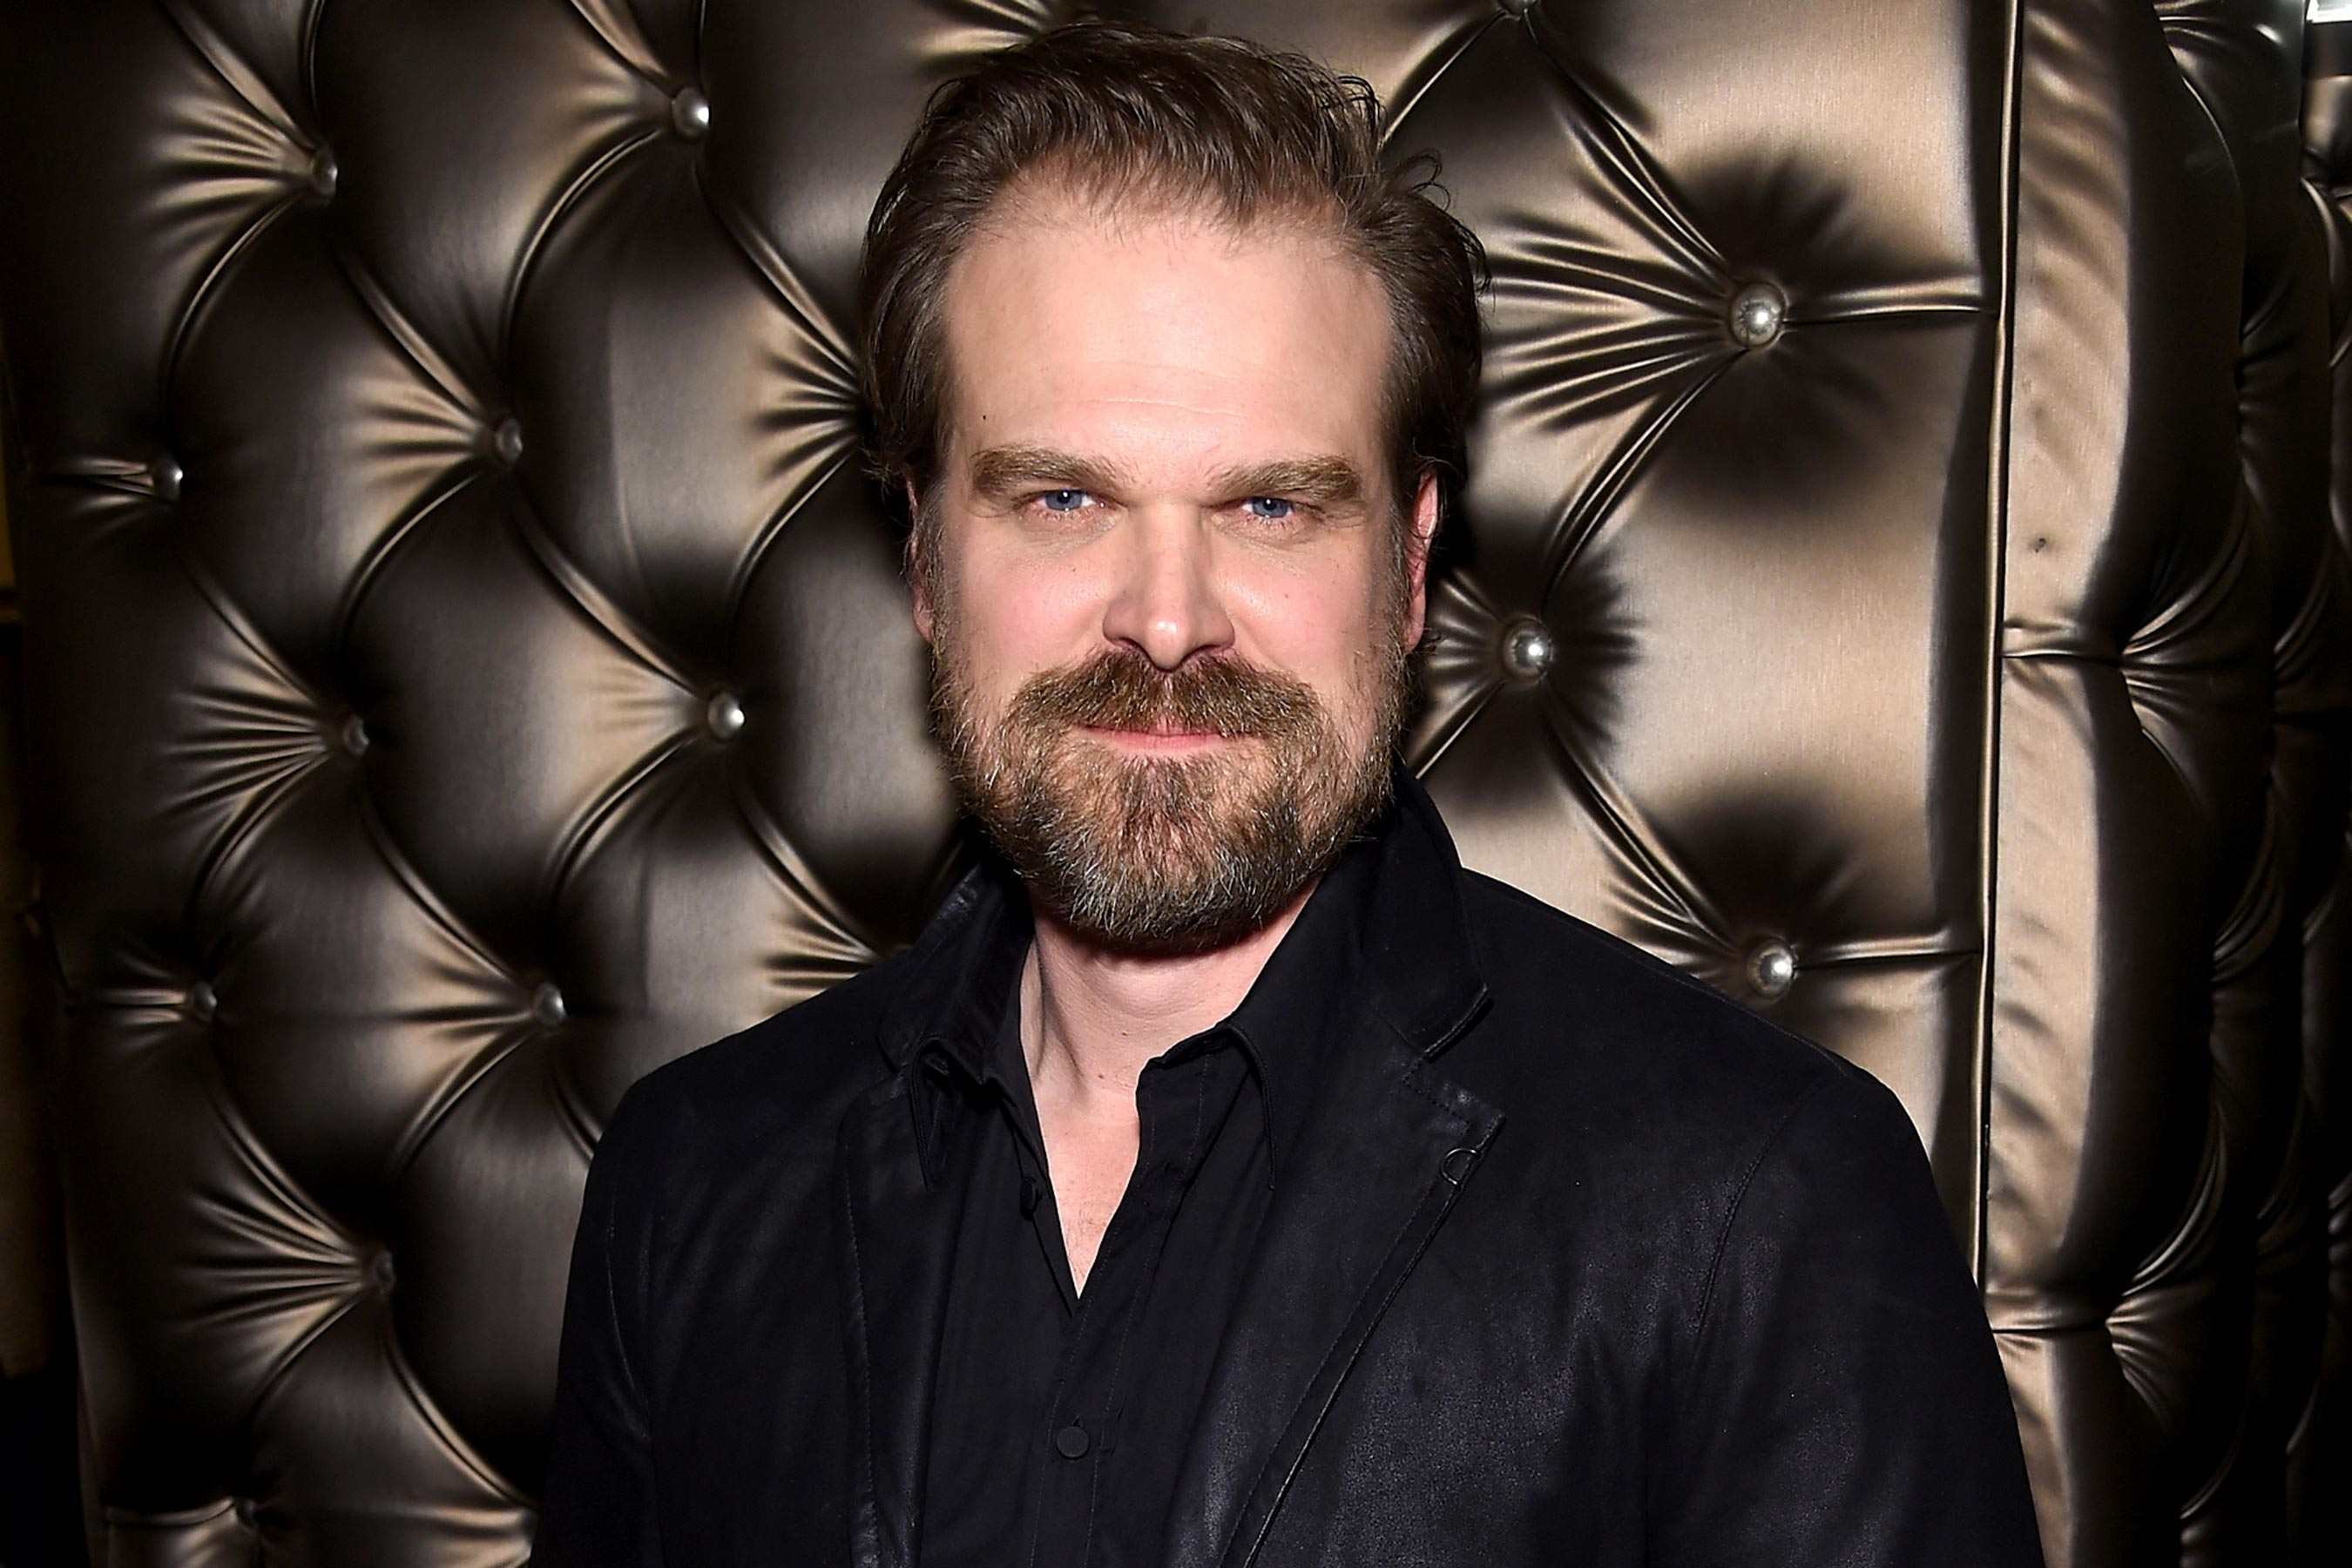 David Harbour: Hellboy star will officiate wedding for retweets